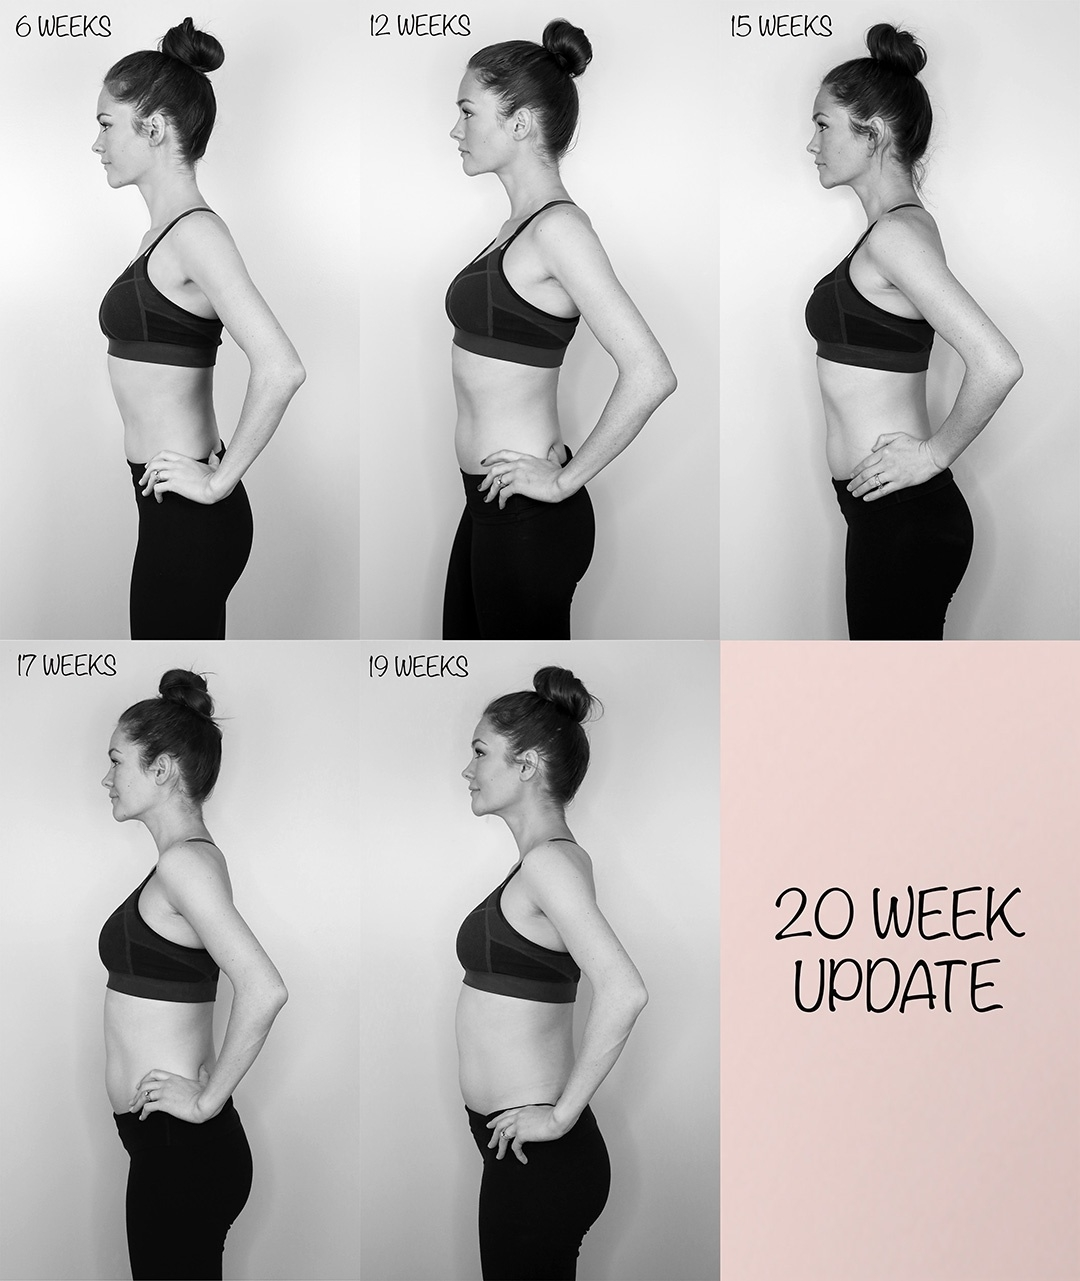 Pregnancy Update: 20 Weeks - Elise Procter  Pregnancy Photos Week By Week